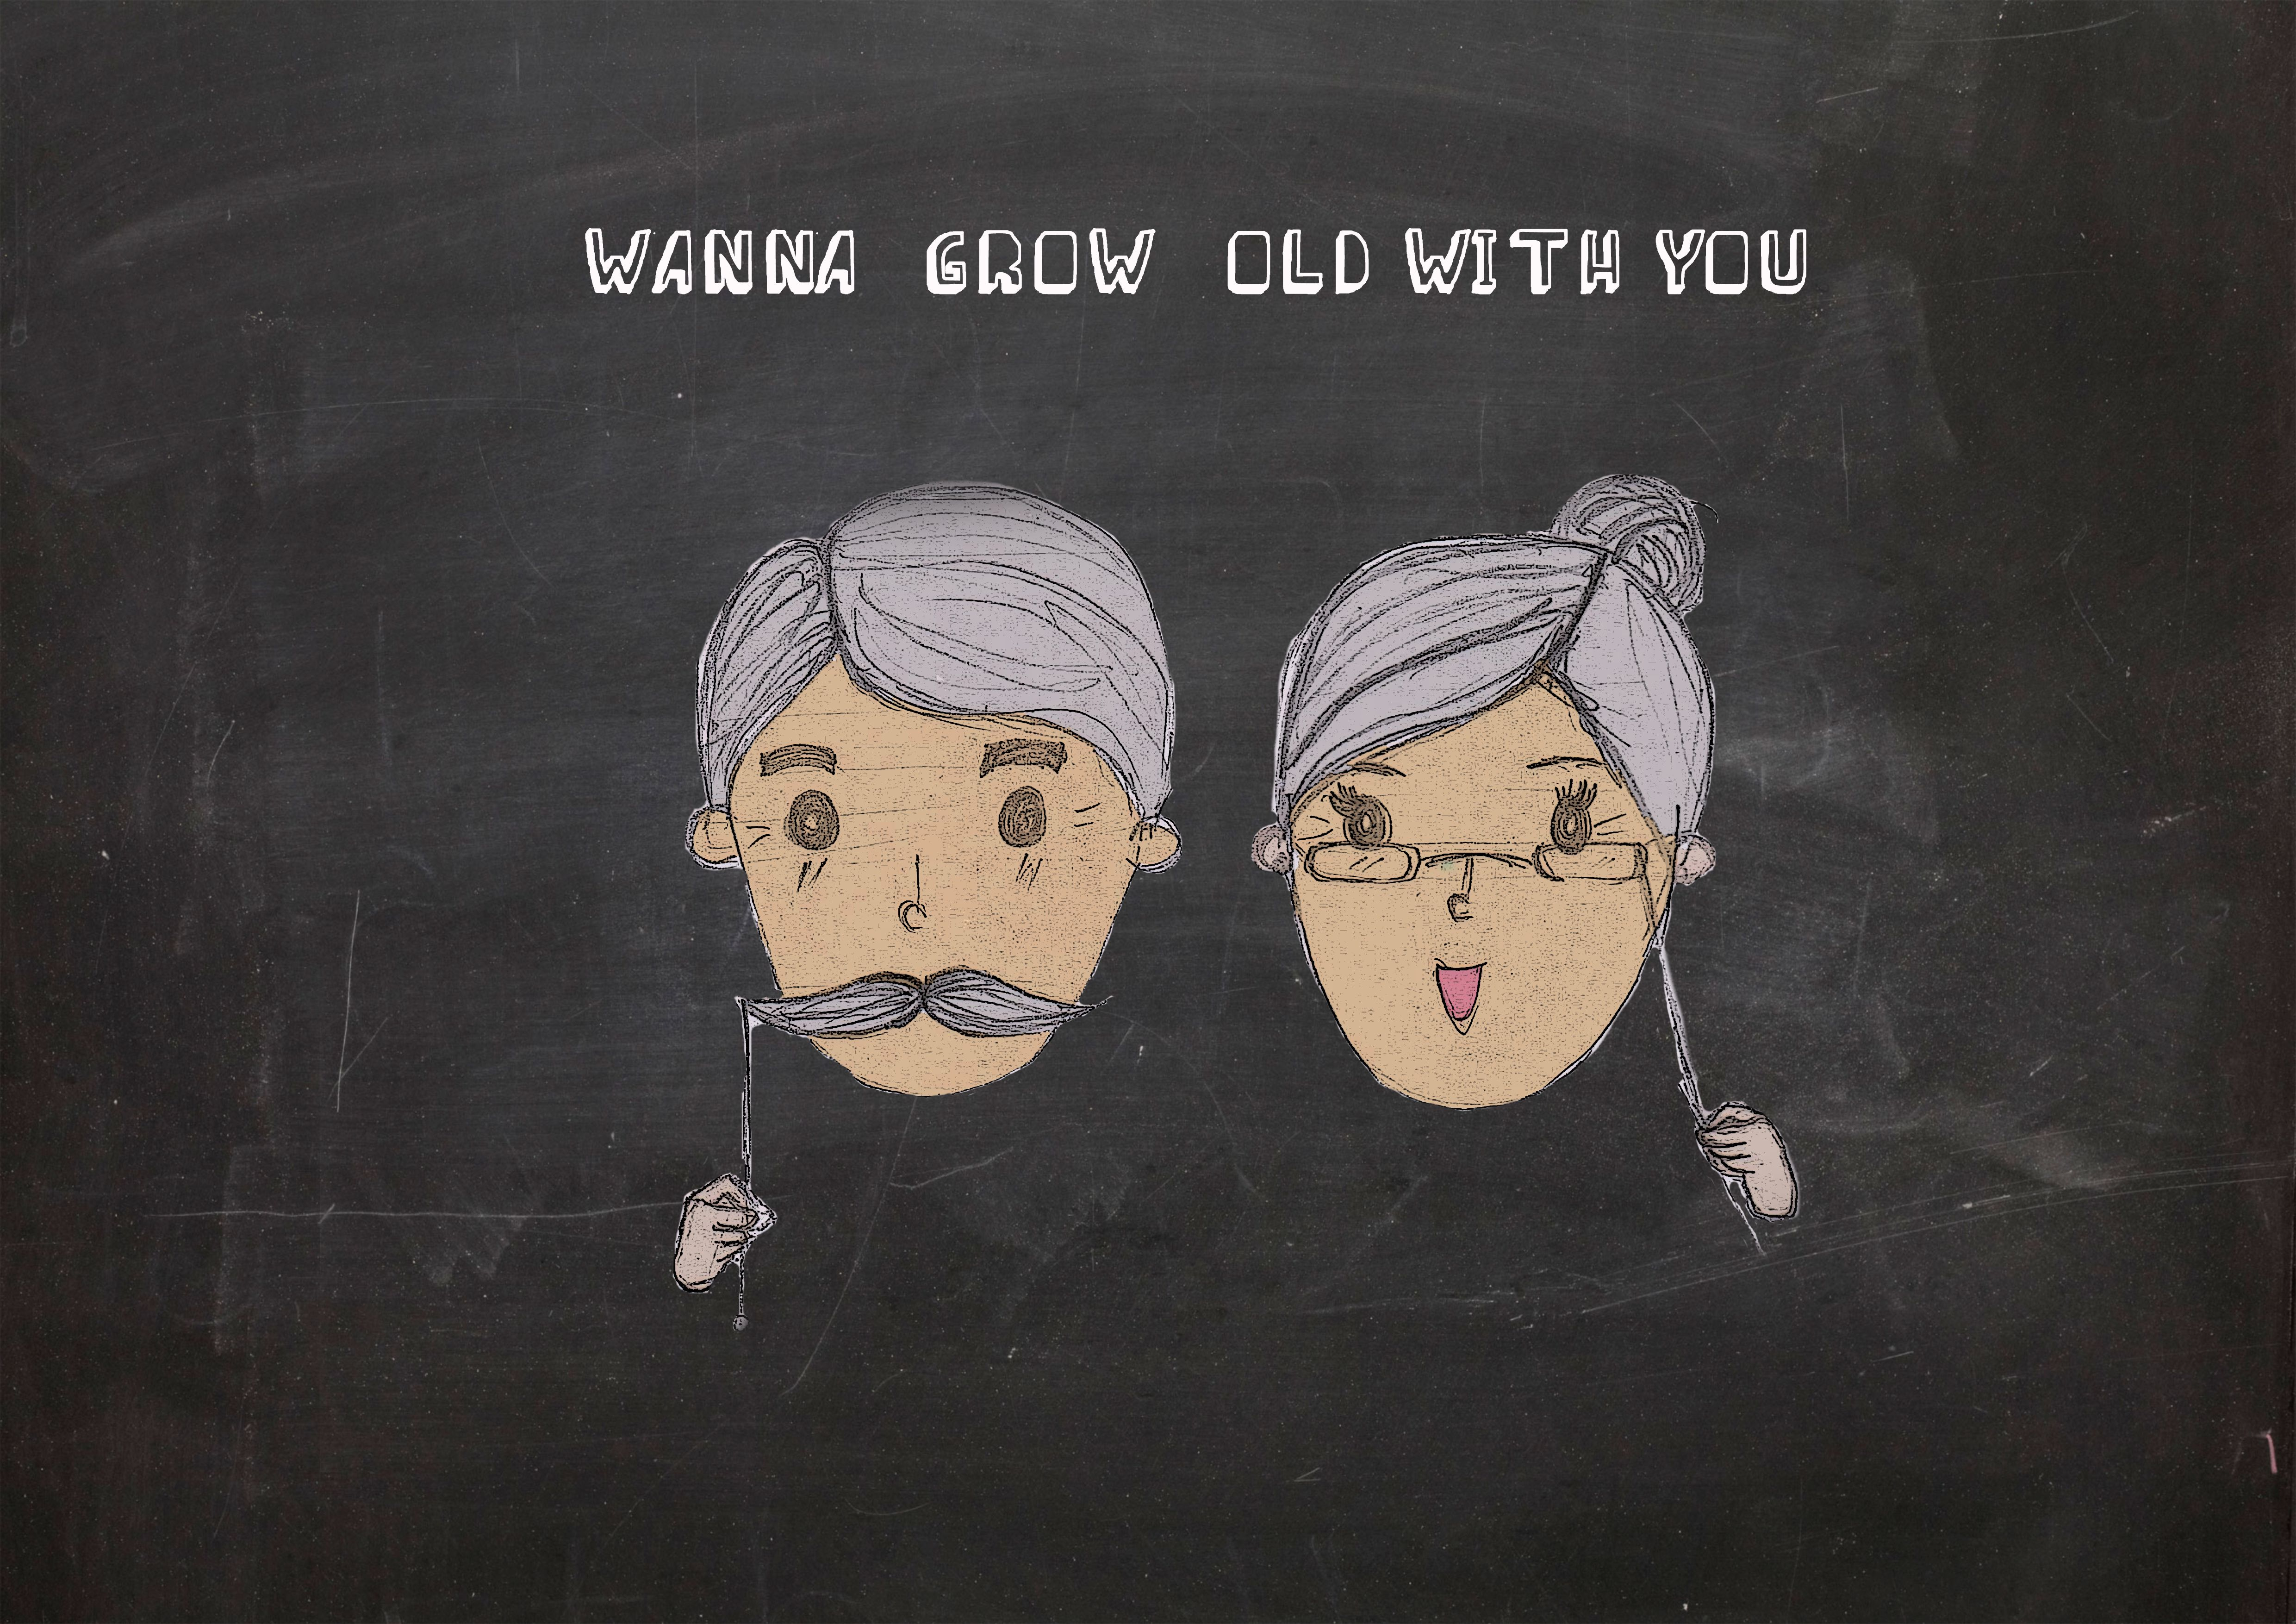 WANNA GROW OLD WITH YOU